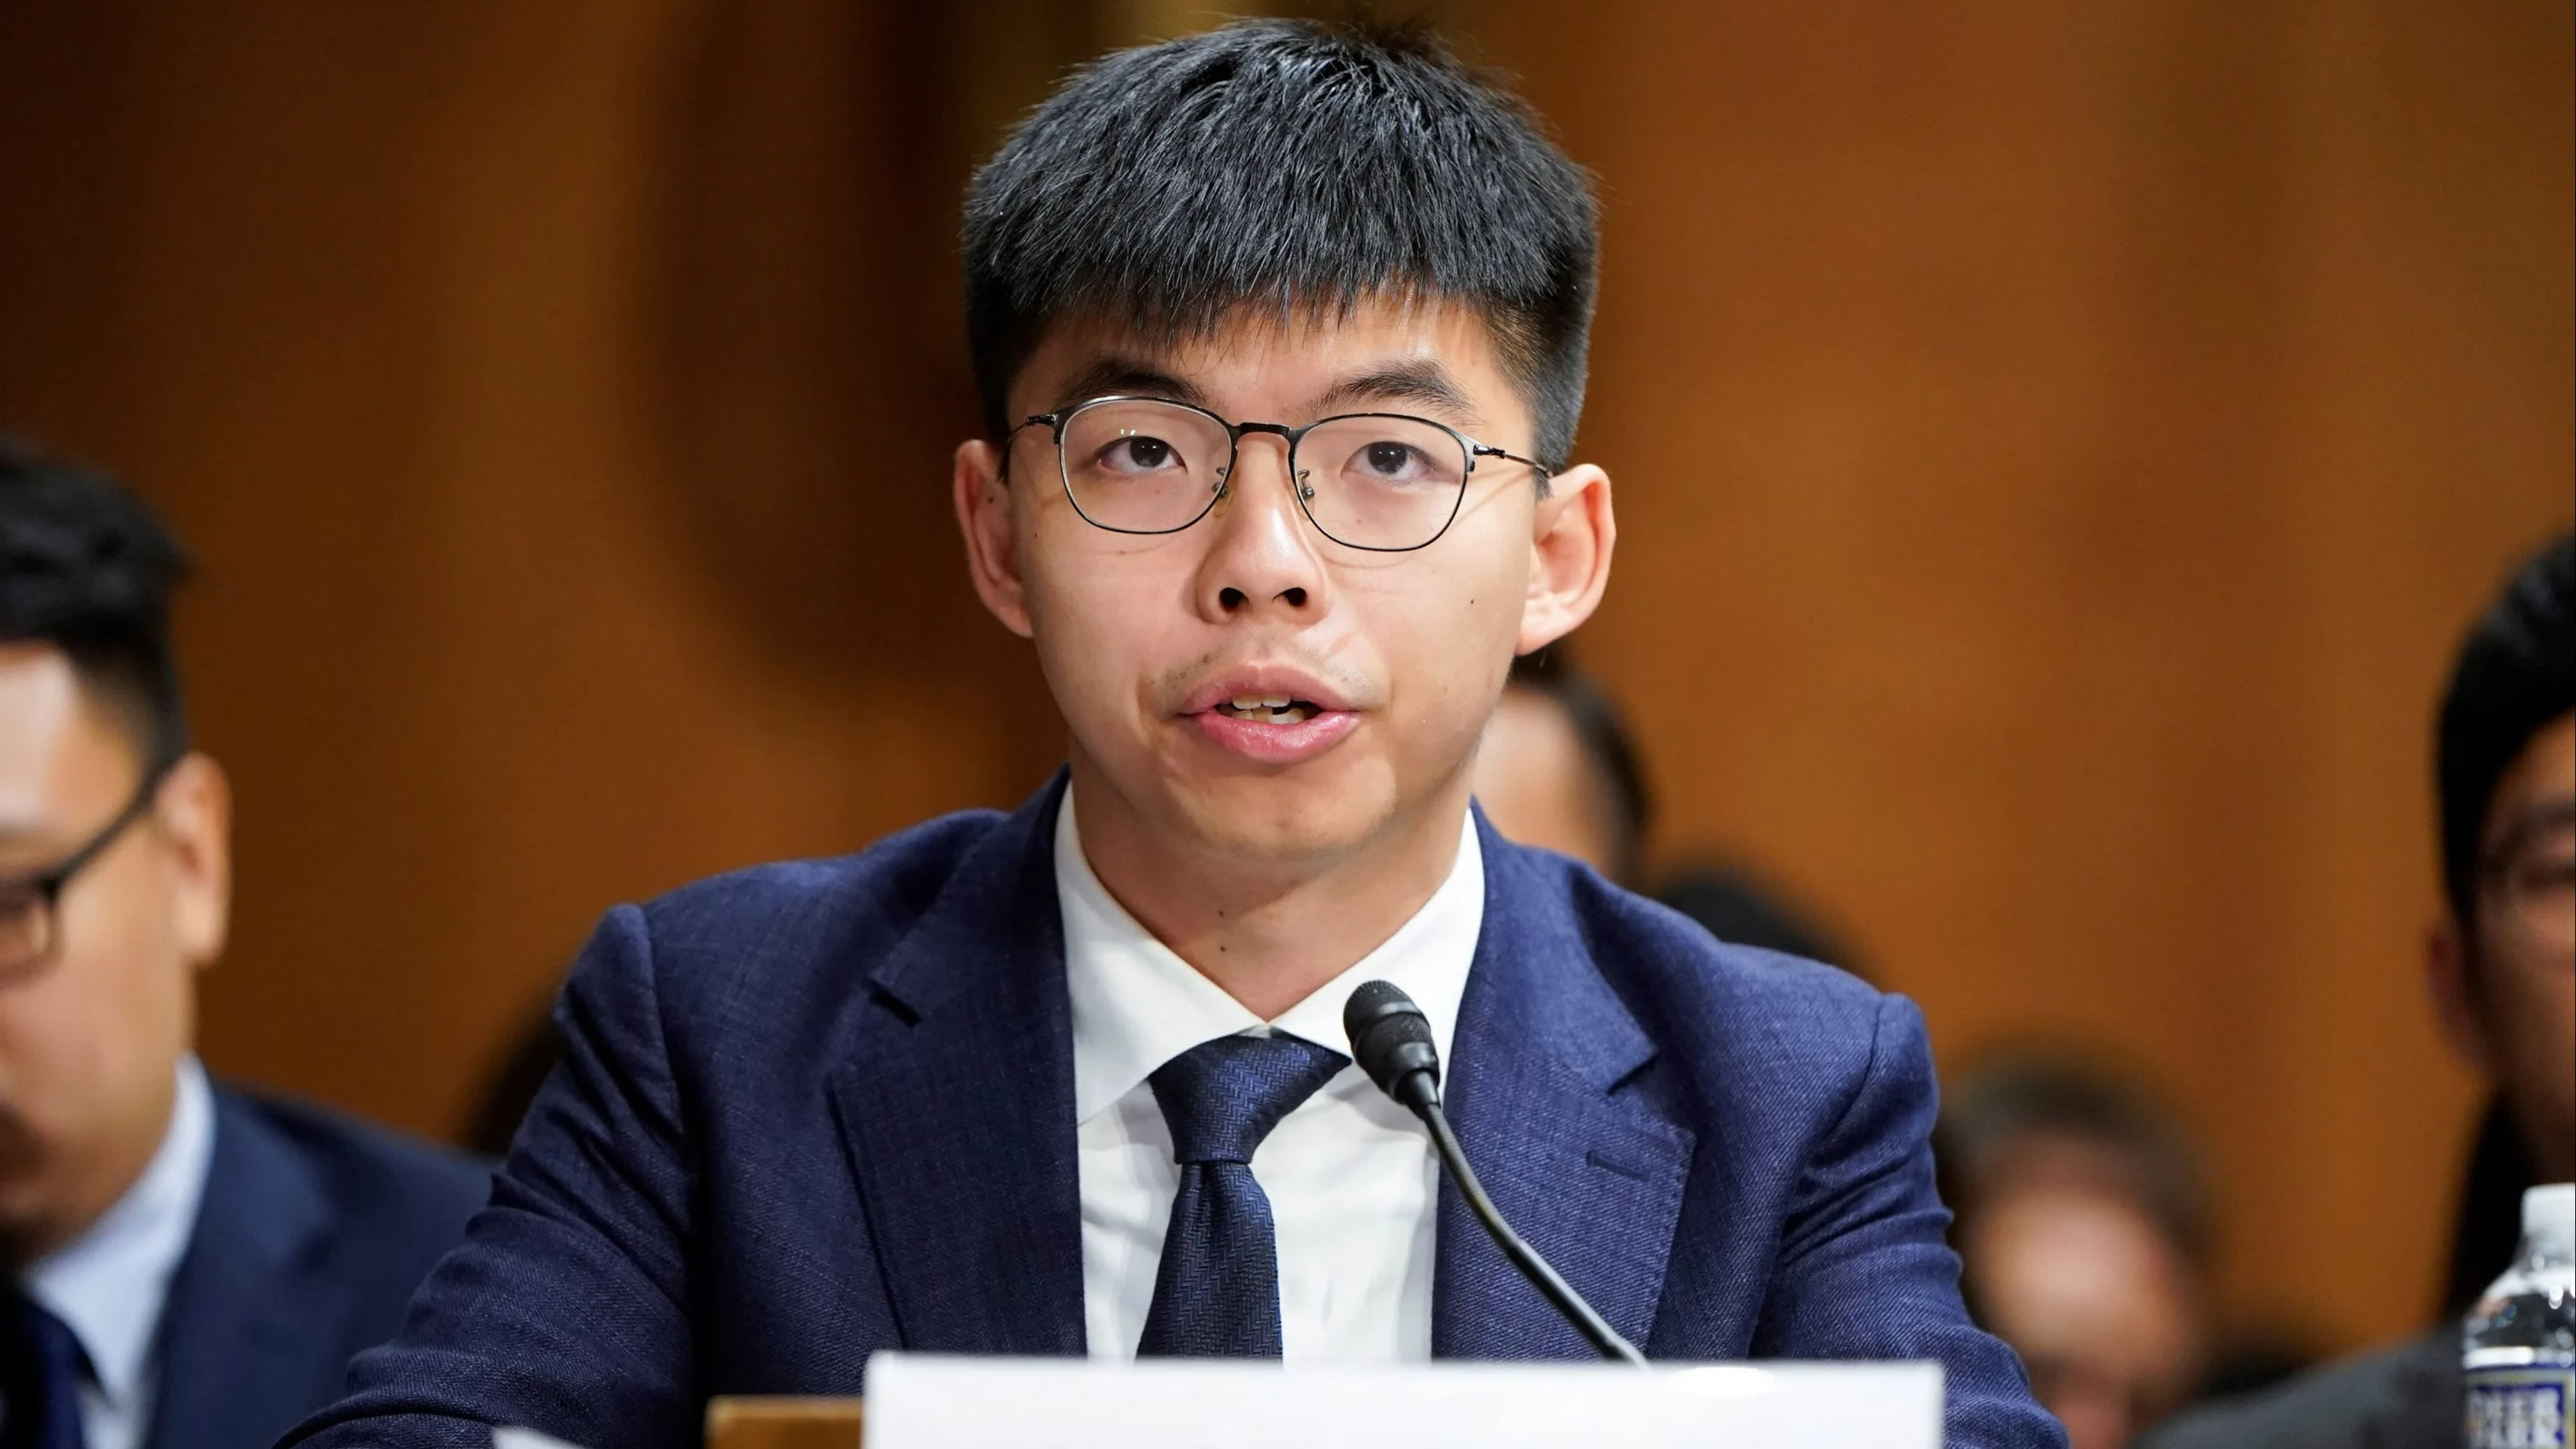 Hong Kong bars democracy activist Joshua Wong from local election